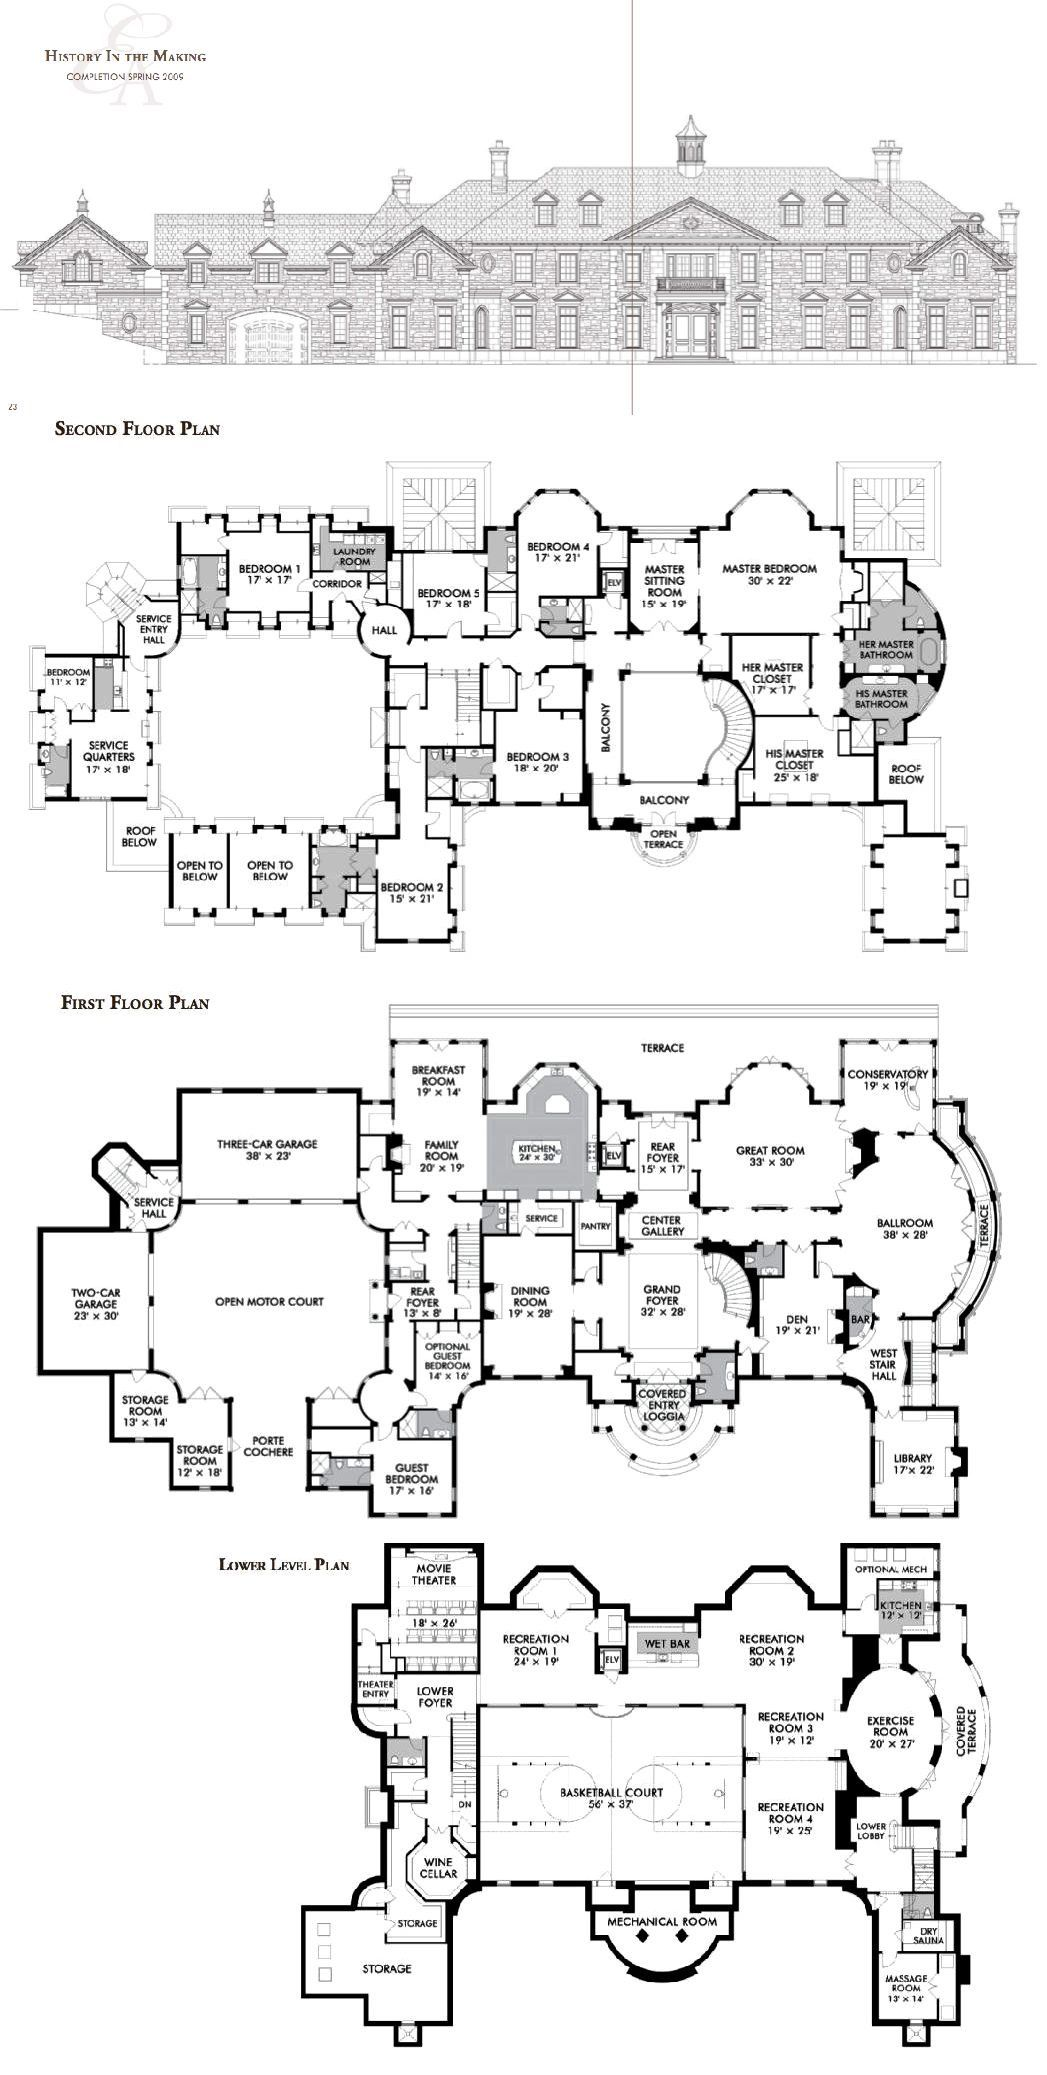 The Stone Mansion Estate In Alpine Nj Luxury House Plans Mansion Floor Plan House Plans Mansion